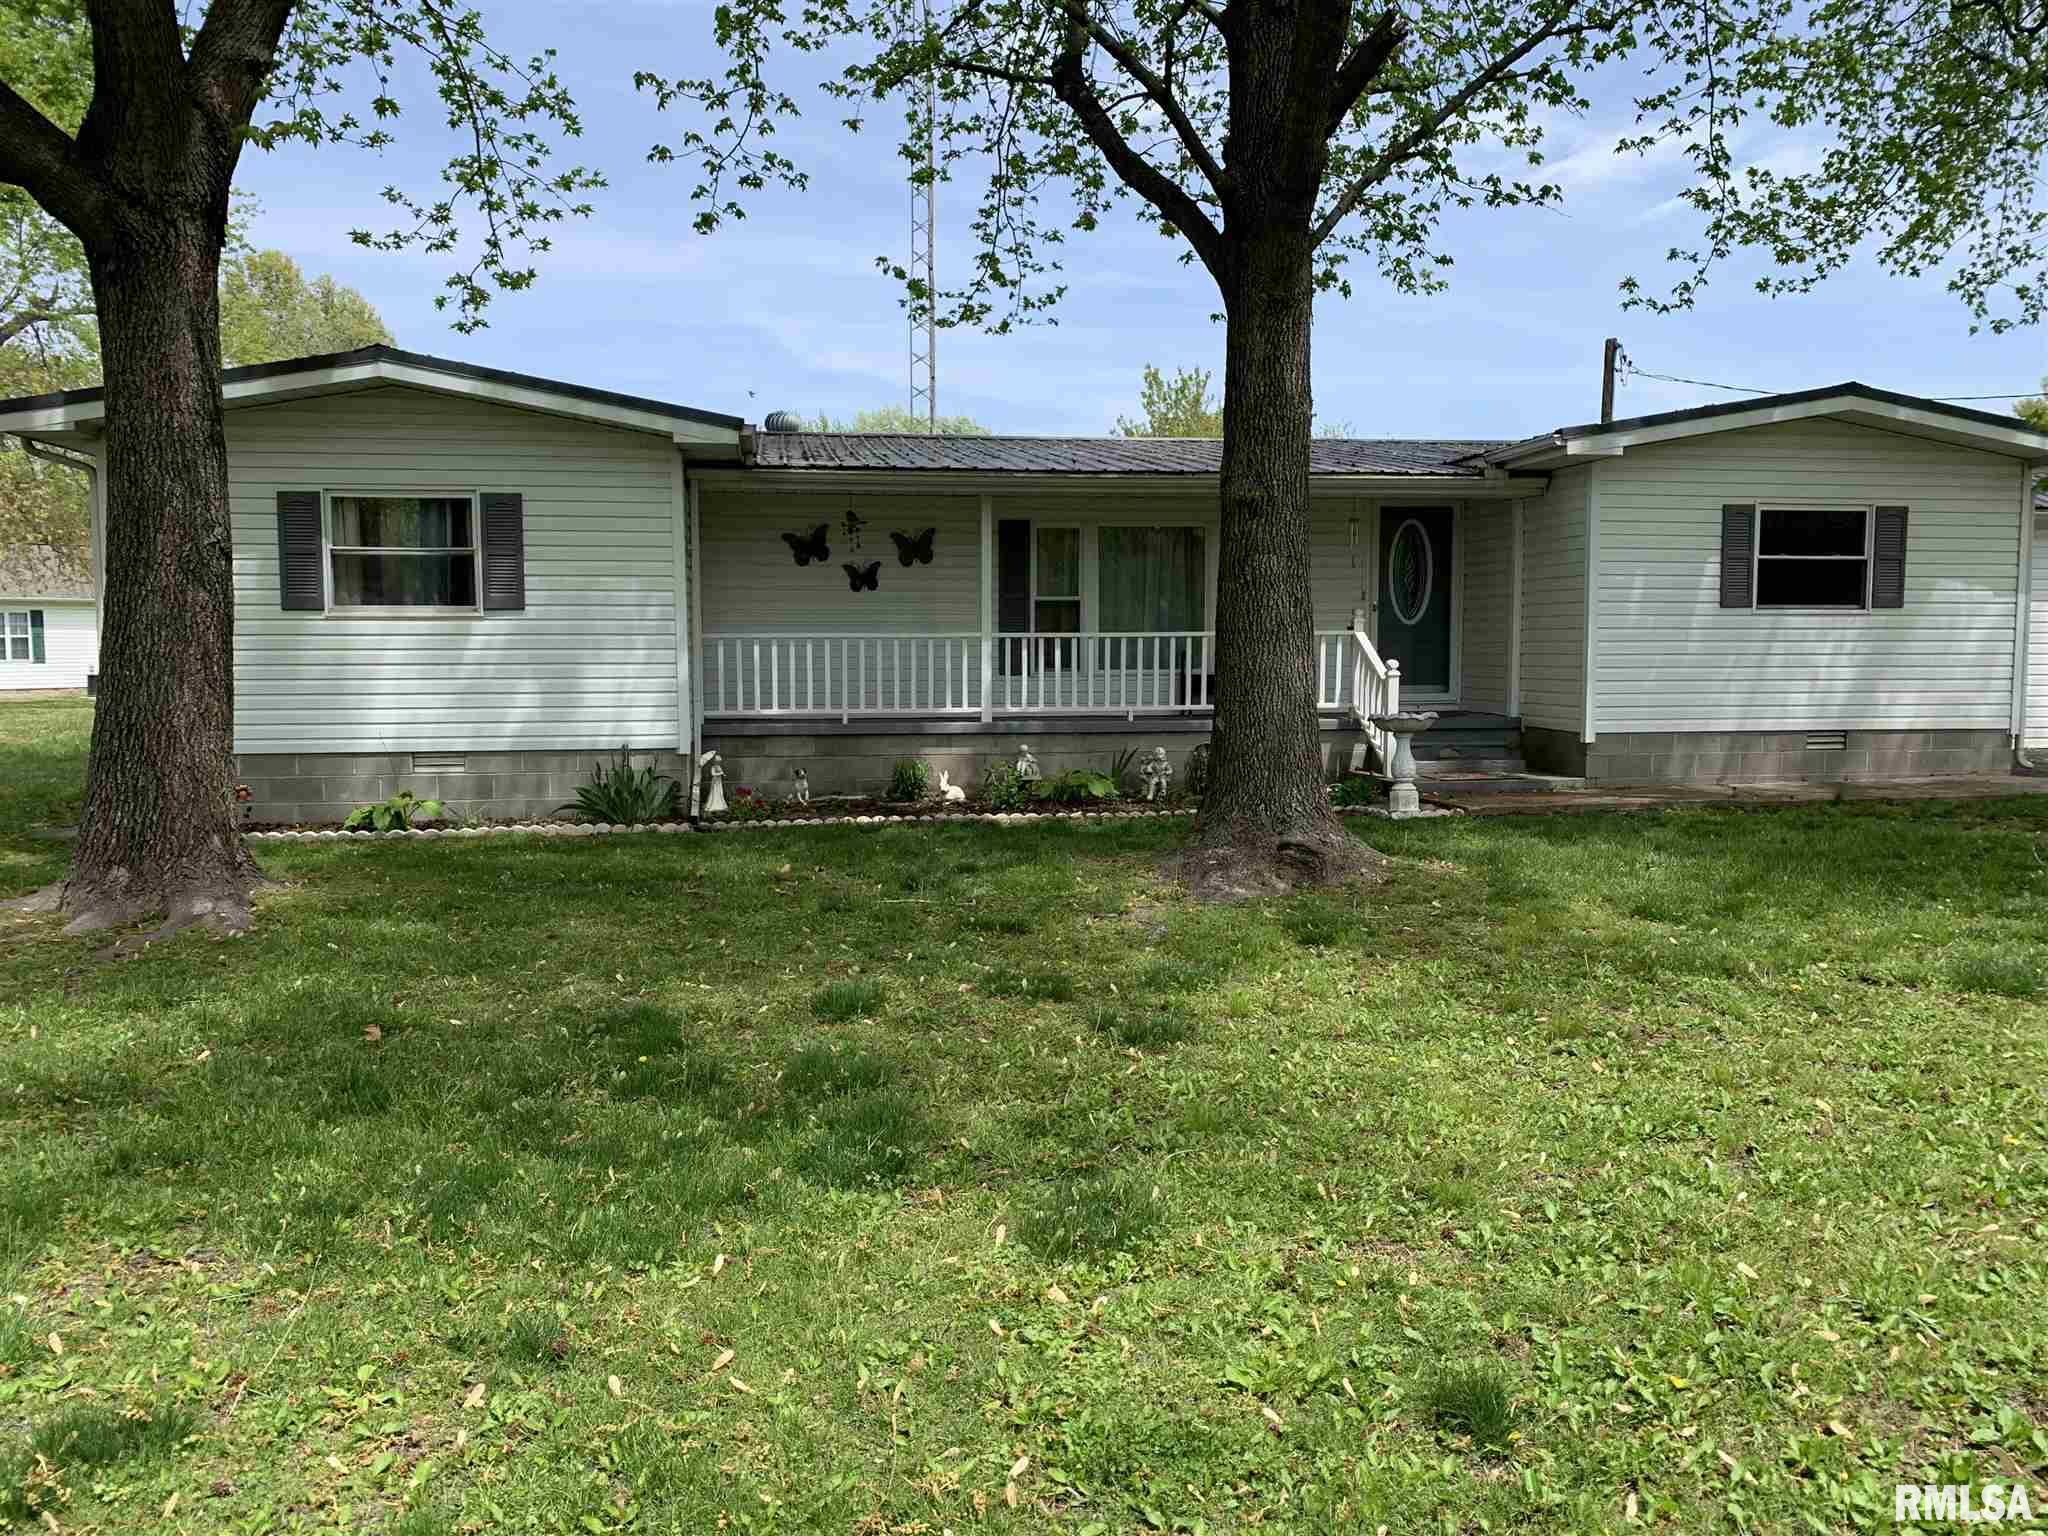 1004 E MARKET Property Photo - Christopher, IL real estate listing